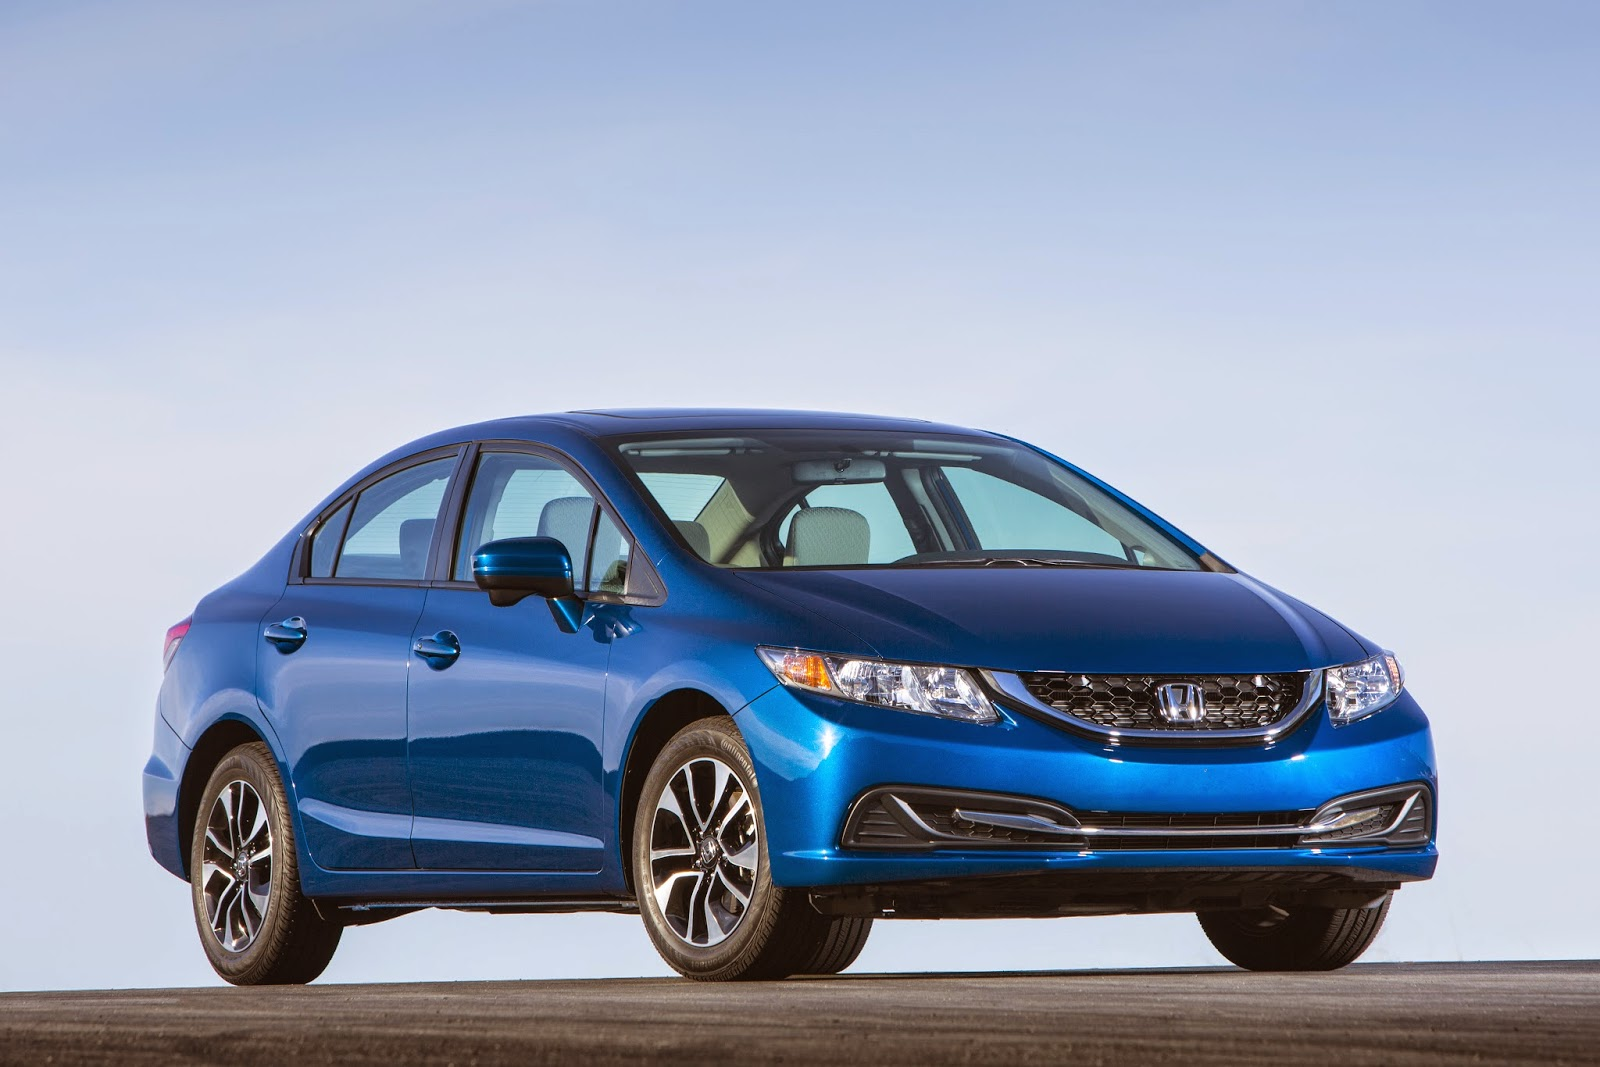 Front 3/4 view of the 2014 Honda Civic EX-L